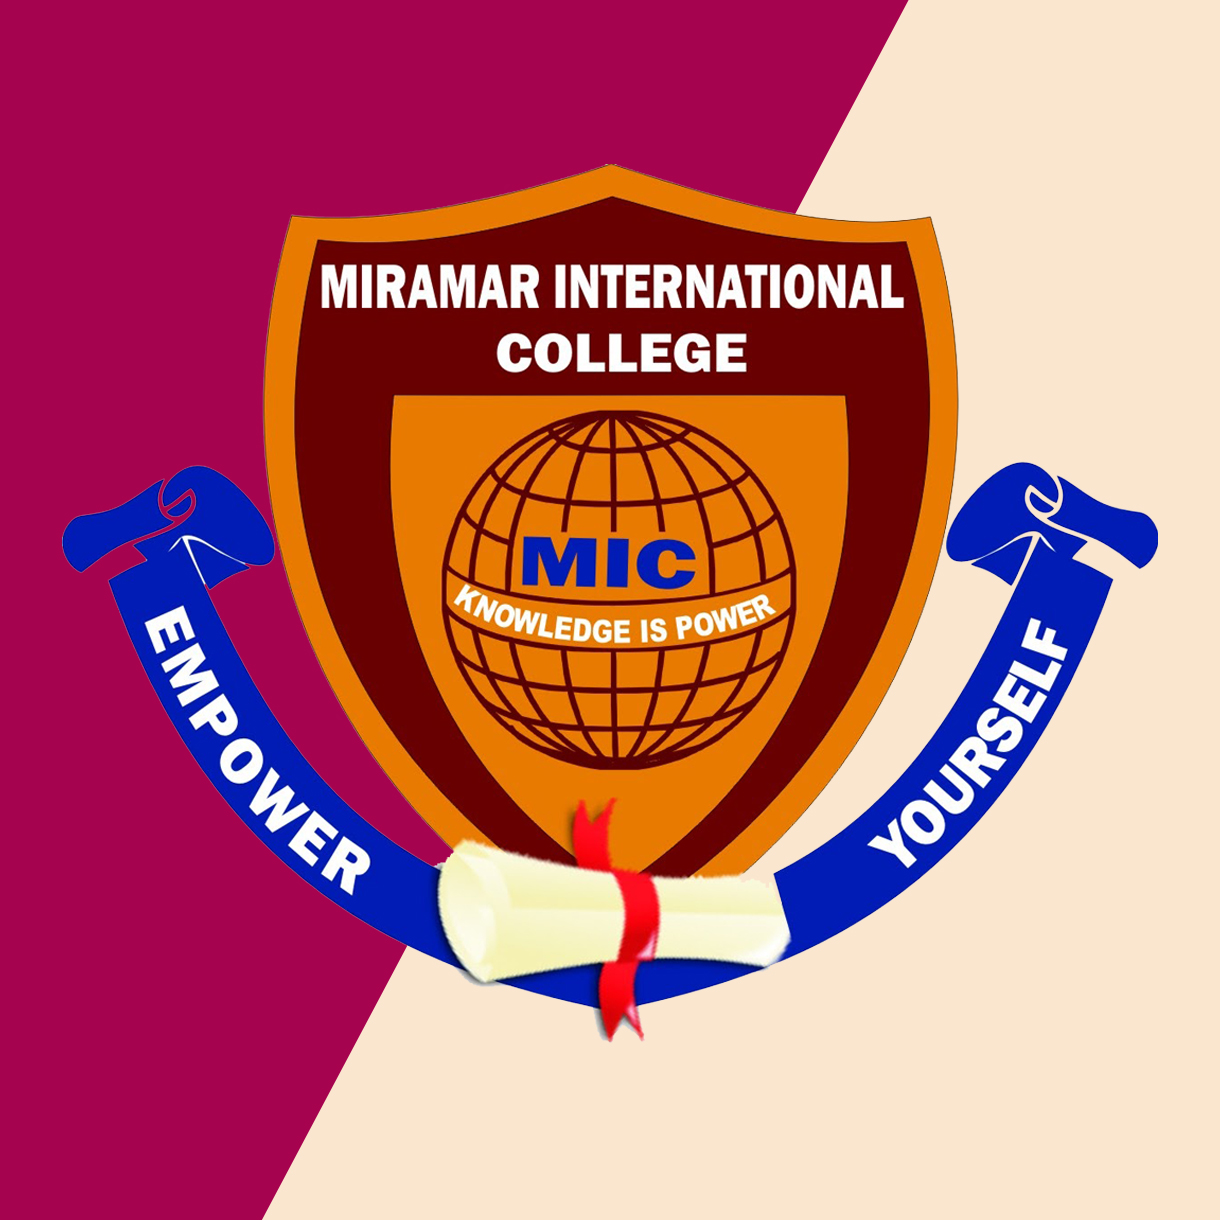 Miramar International College